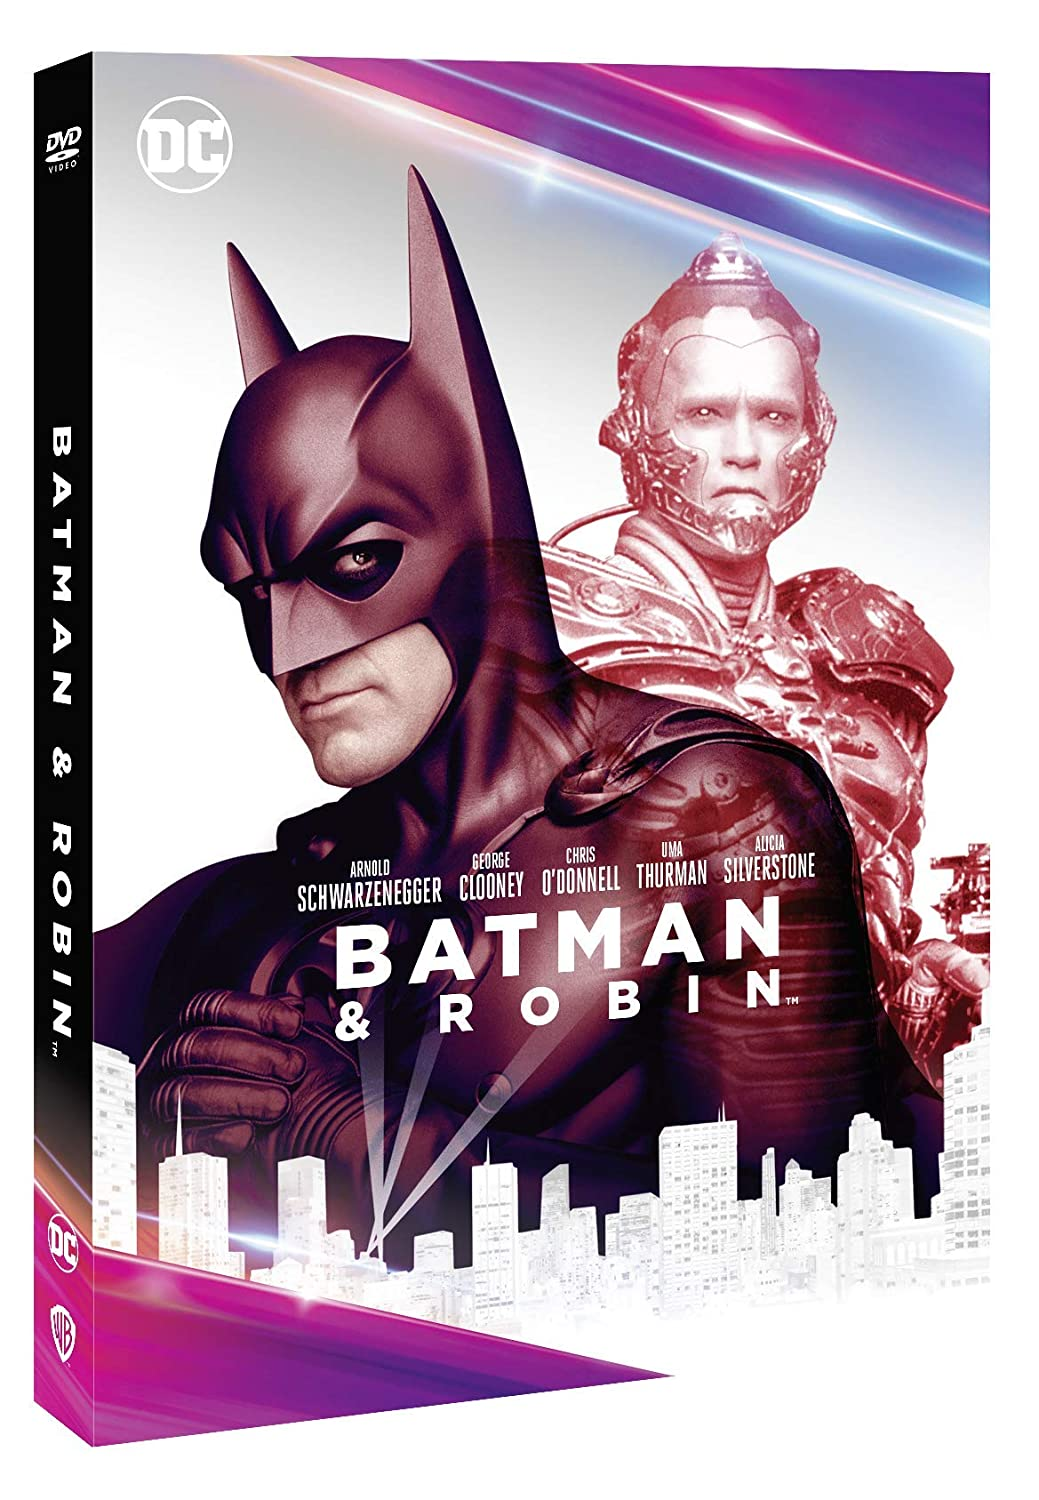 BATMAN & ROBIN (DC COMICS COLLECTION) (DVD)